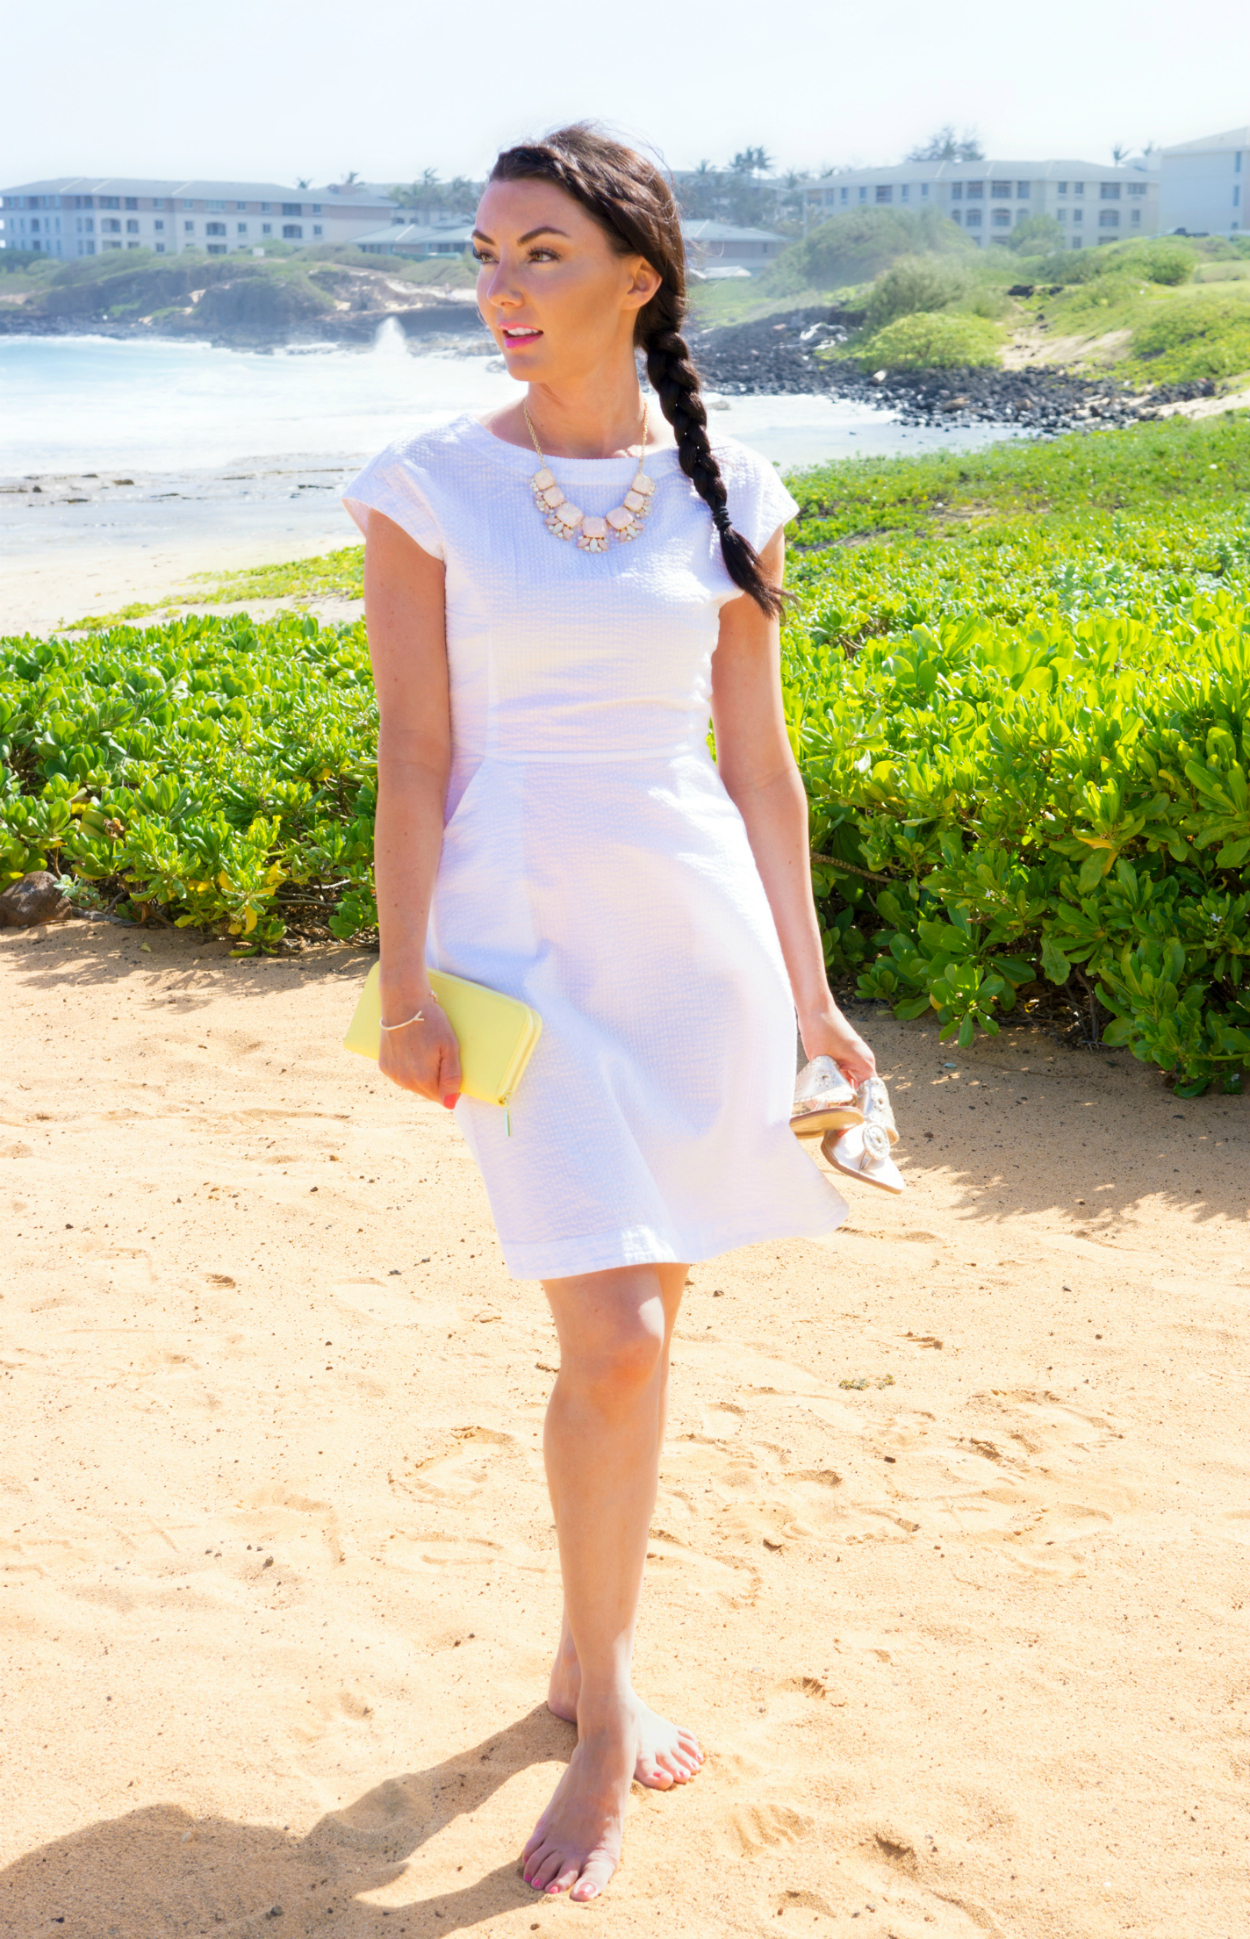 Wedding Dress Code Beach Chic: If you re looking for other beach ...